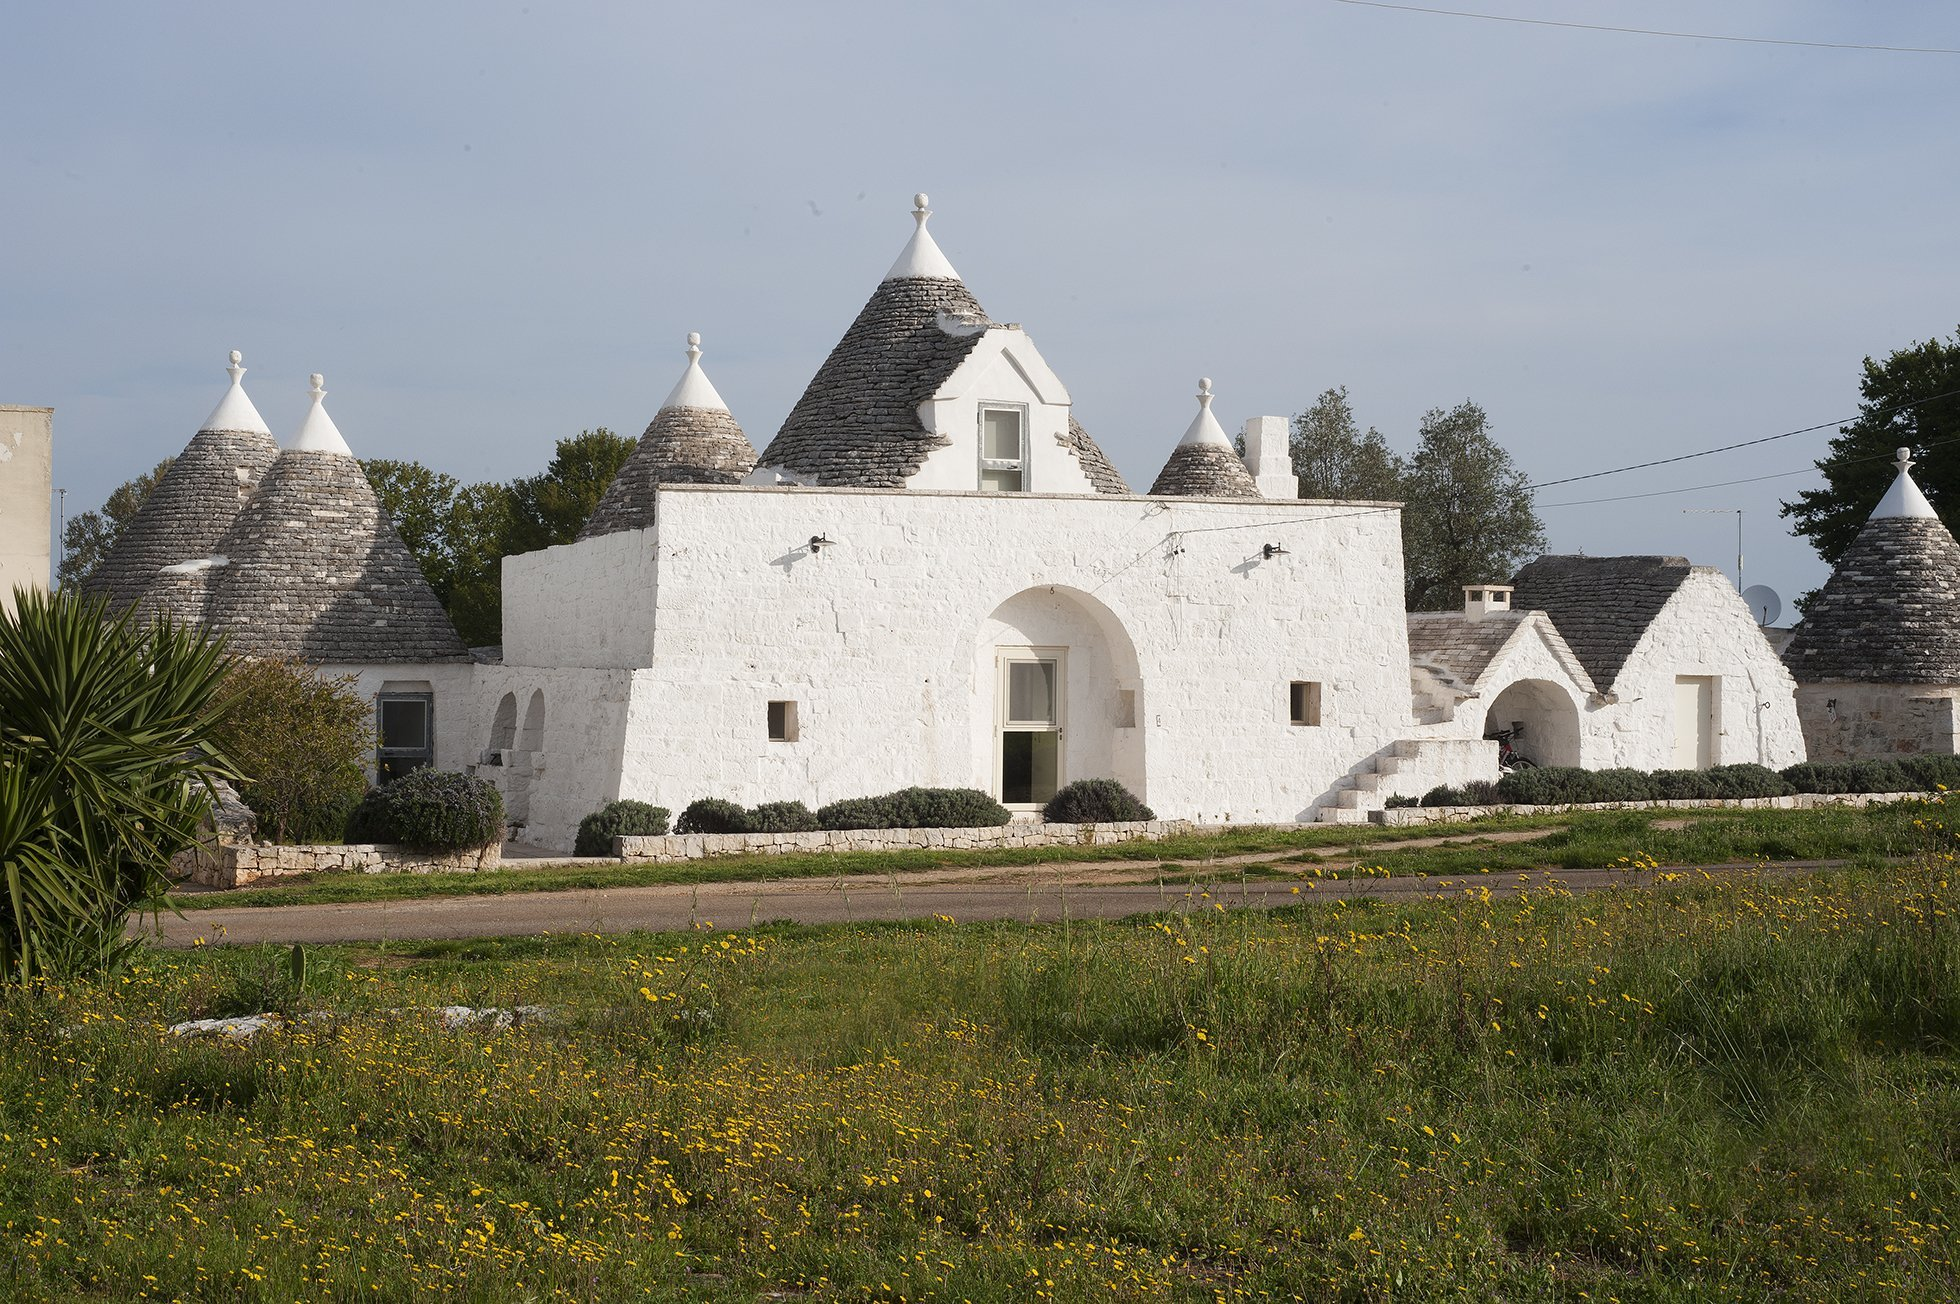 Five bedroomed trullo property with large swimming pool located in the Valle d'Itria